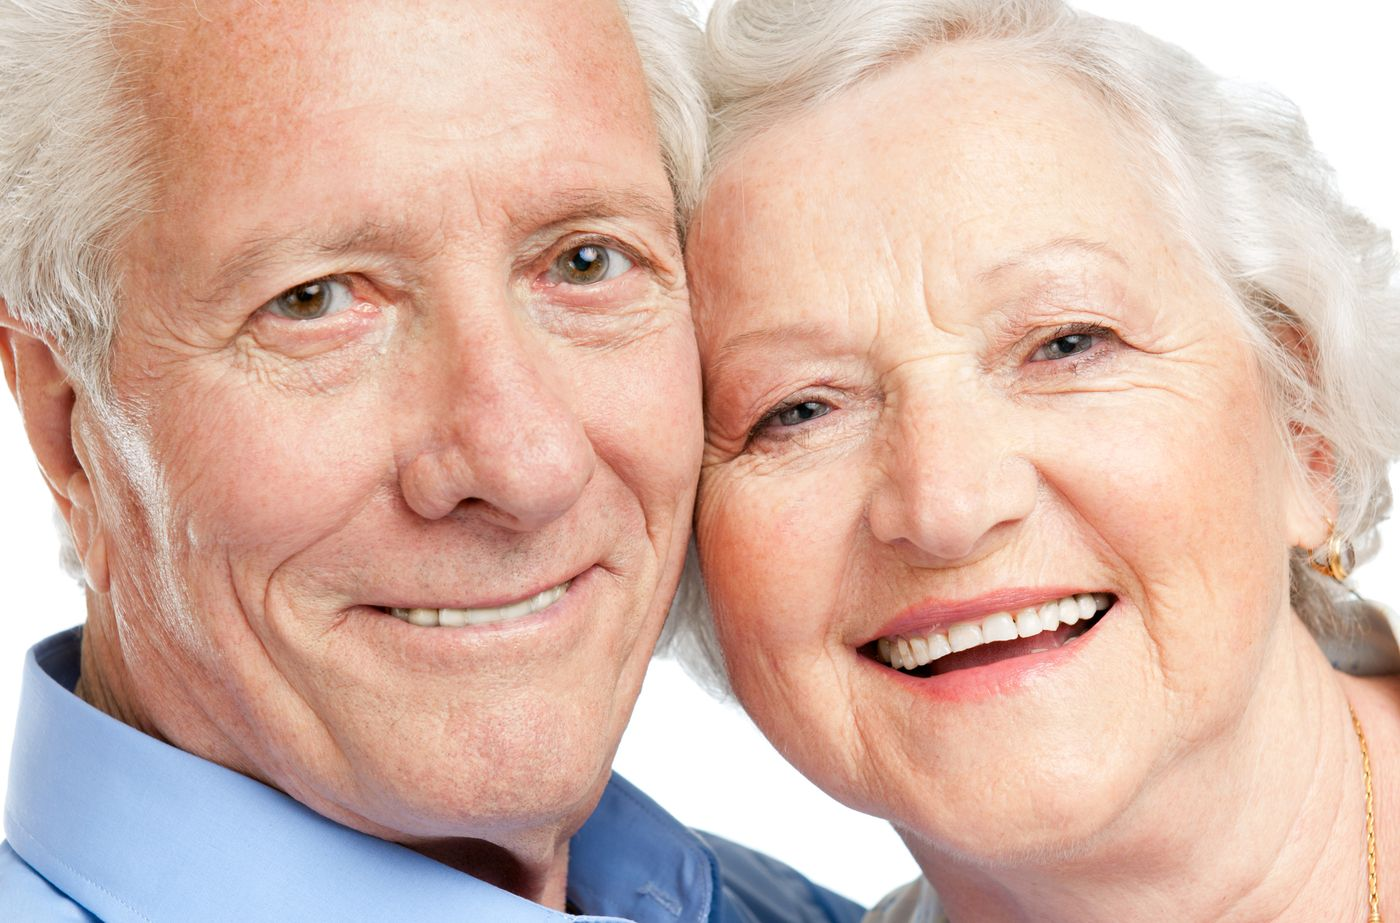 8 Common Dentures Myths